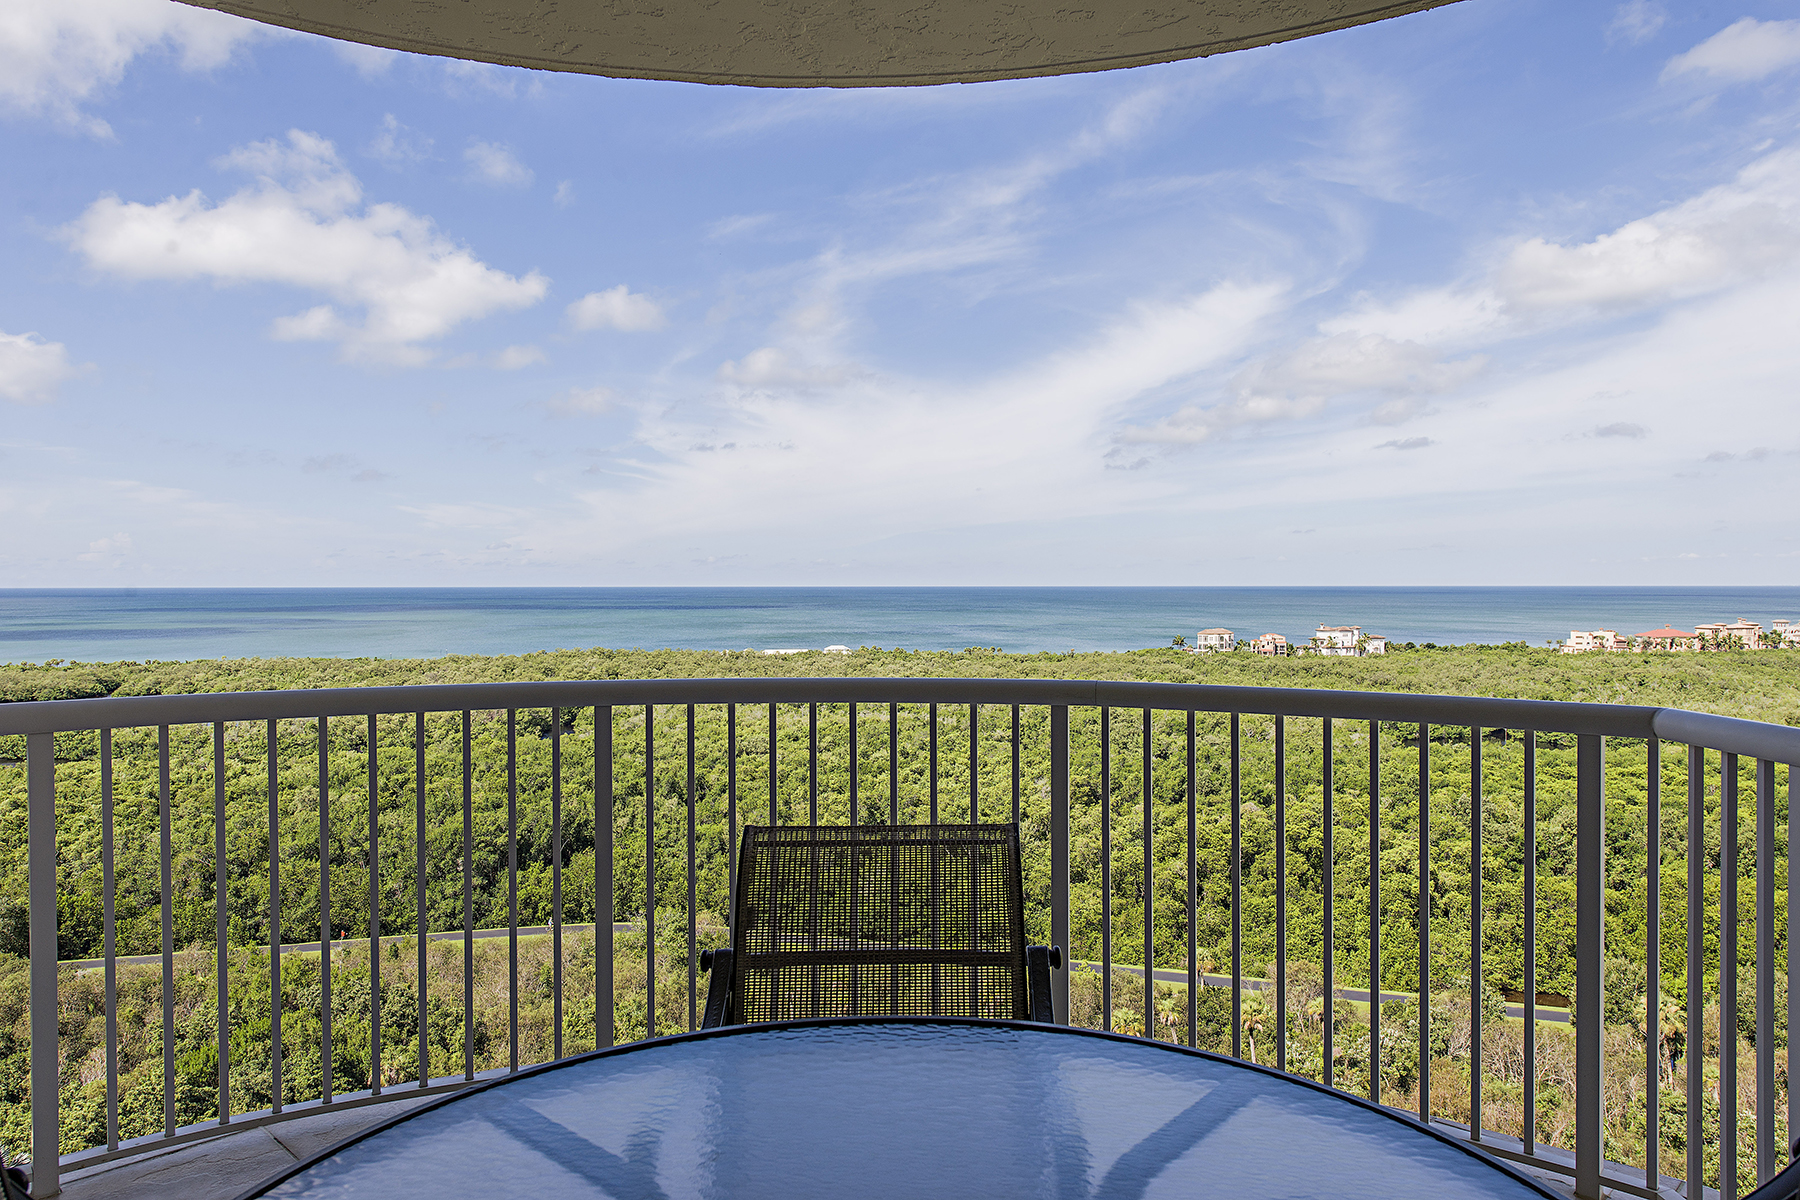 Condominium for Rent at PELICAN BAY - ST. RAPHAEL 7117 Pelican Bay Blvd 1508, Naples, Florida 34108 United States